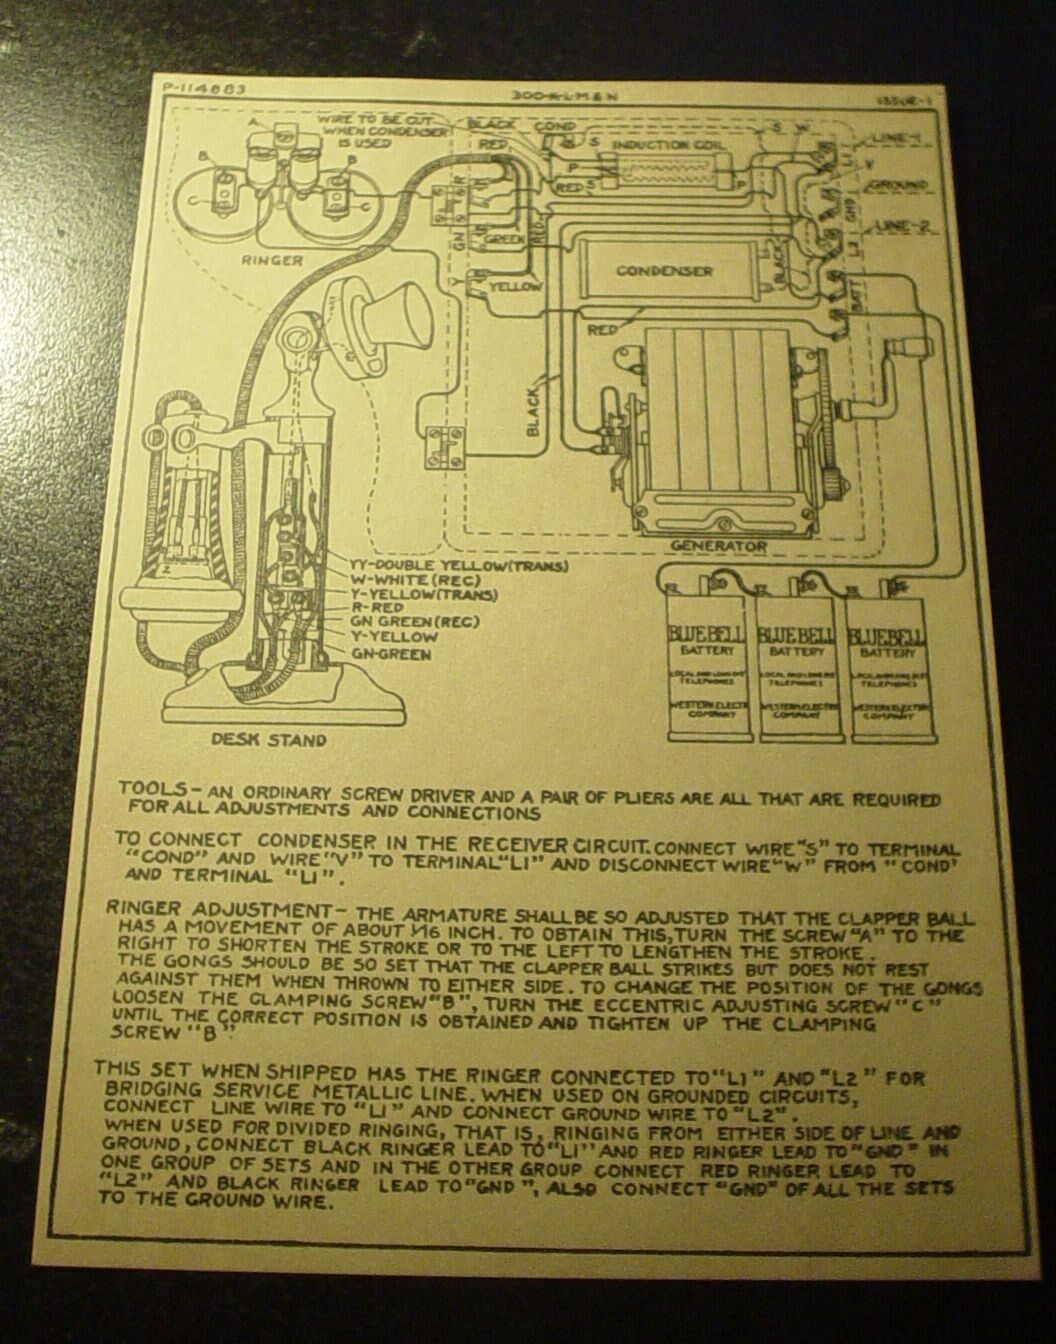 Western Electric Candlestick Desk Telephone Wiring Schematic Diagram